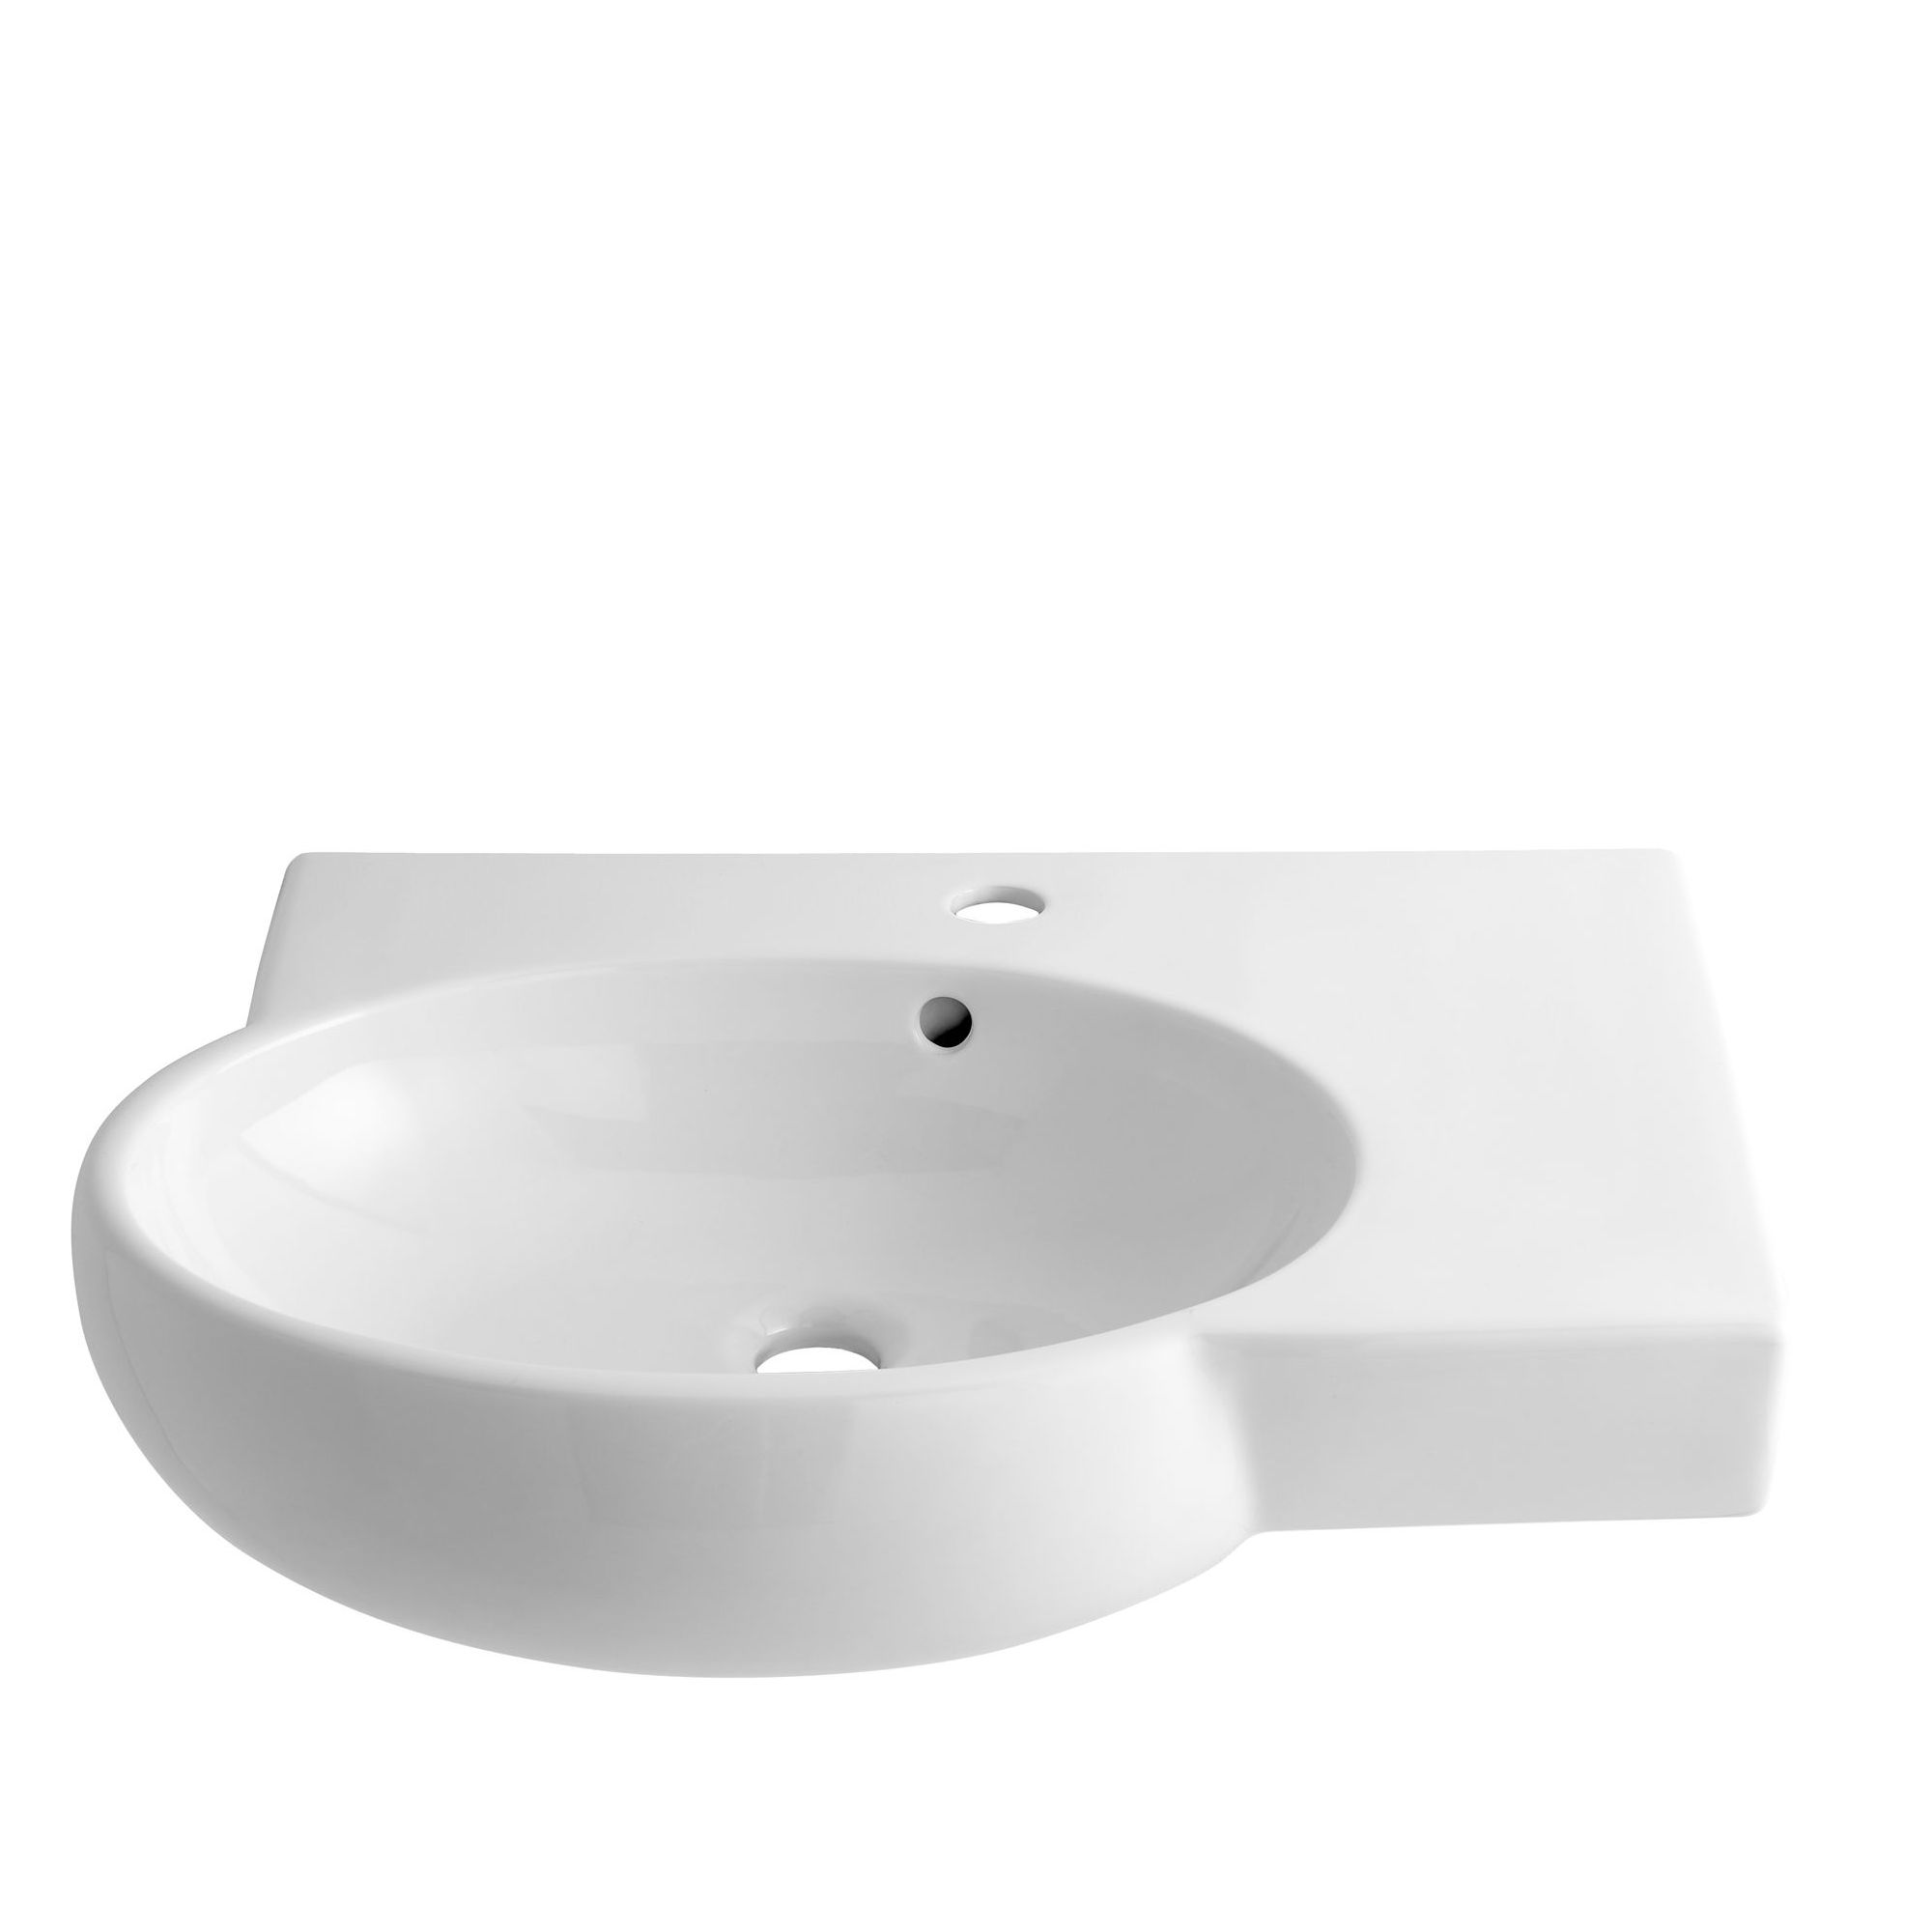 Stanford 660 Vitreous China Rectangular Pedestal Bathroom